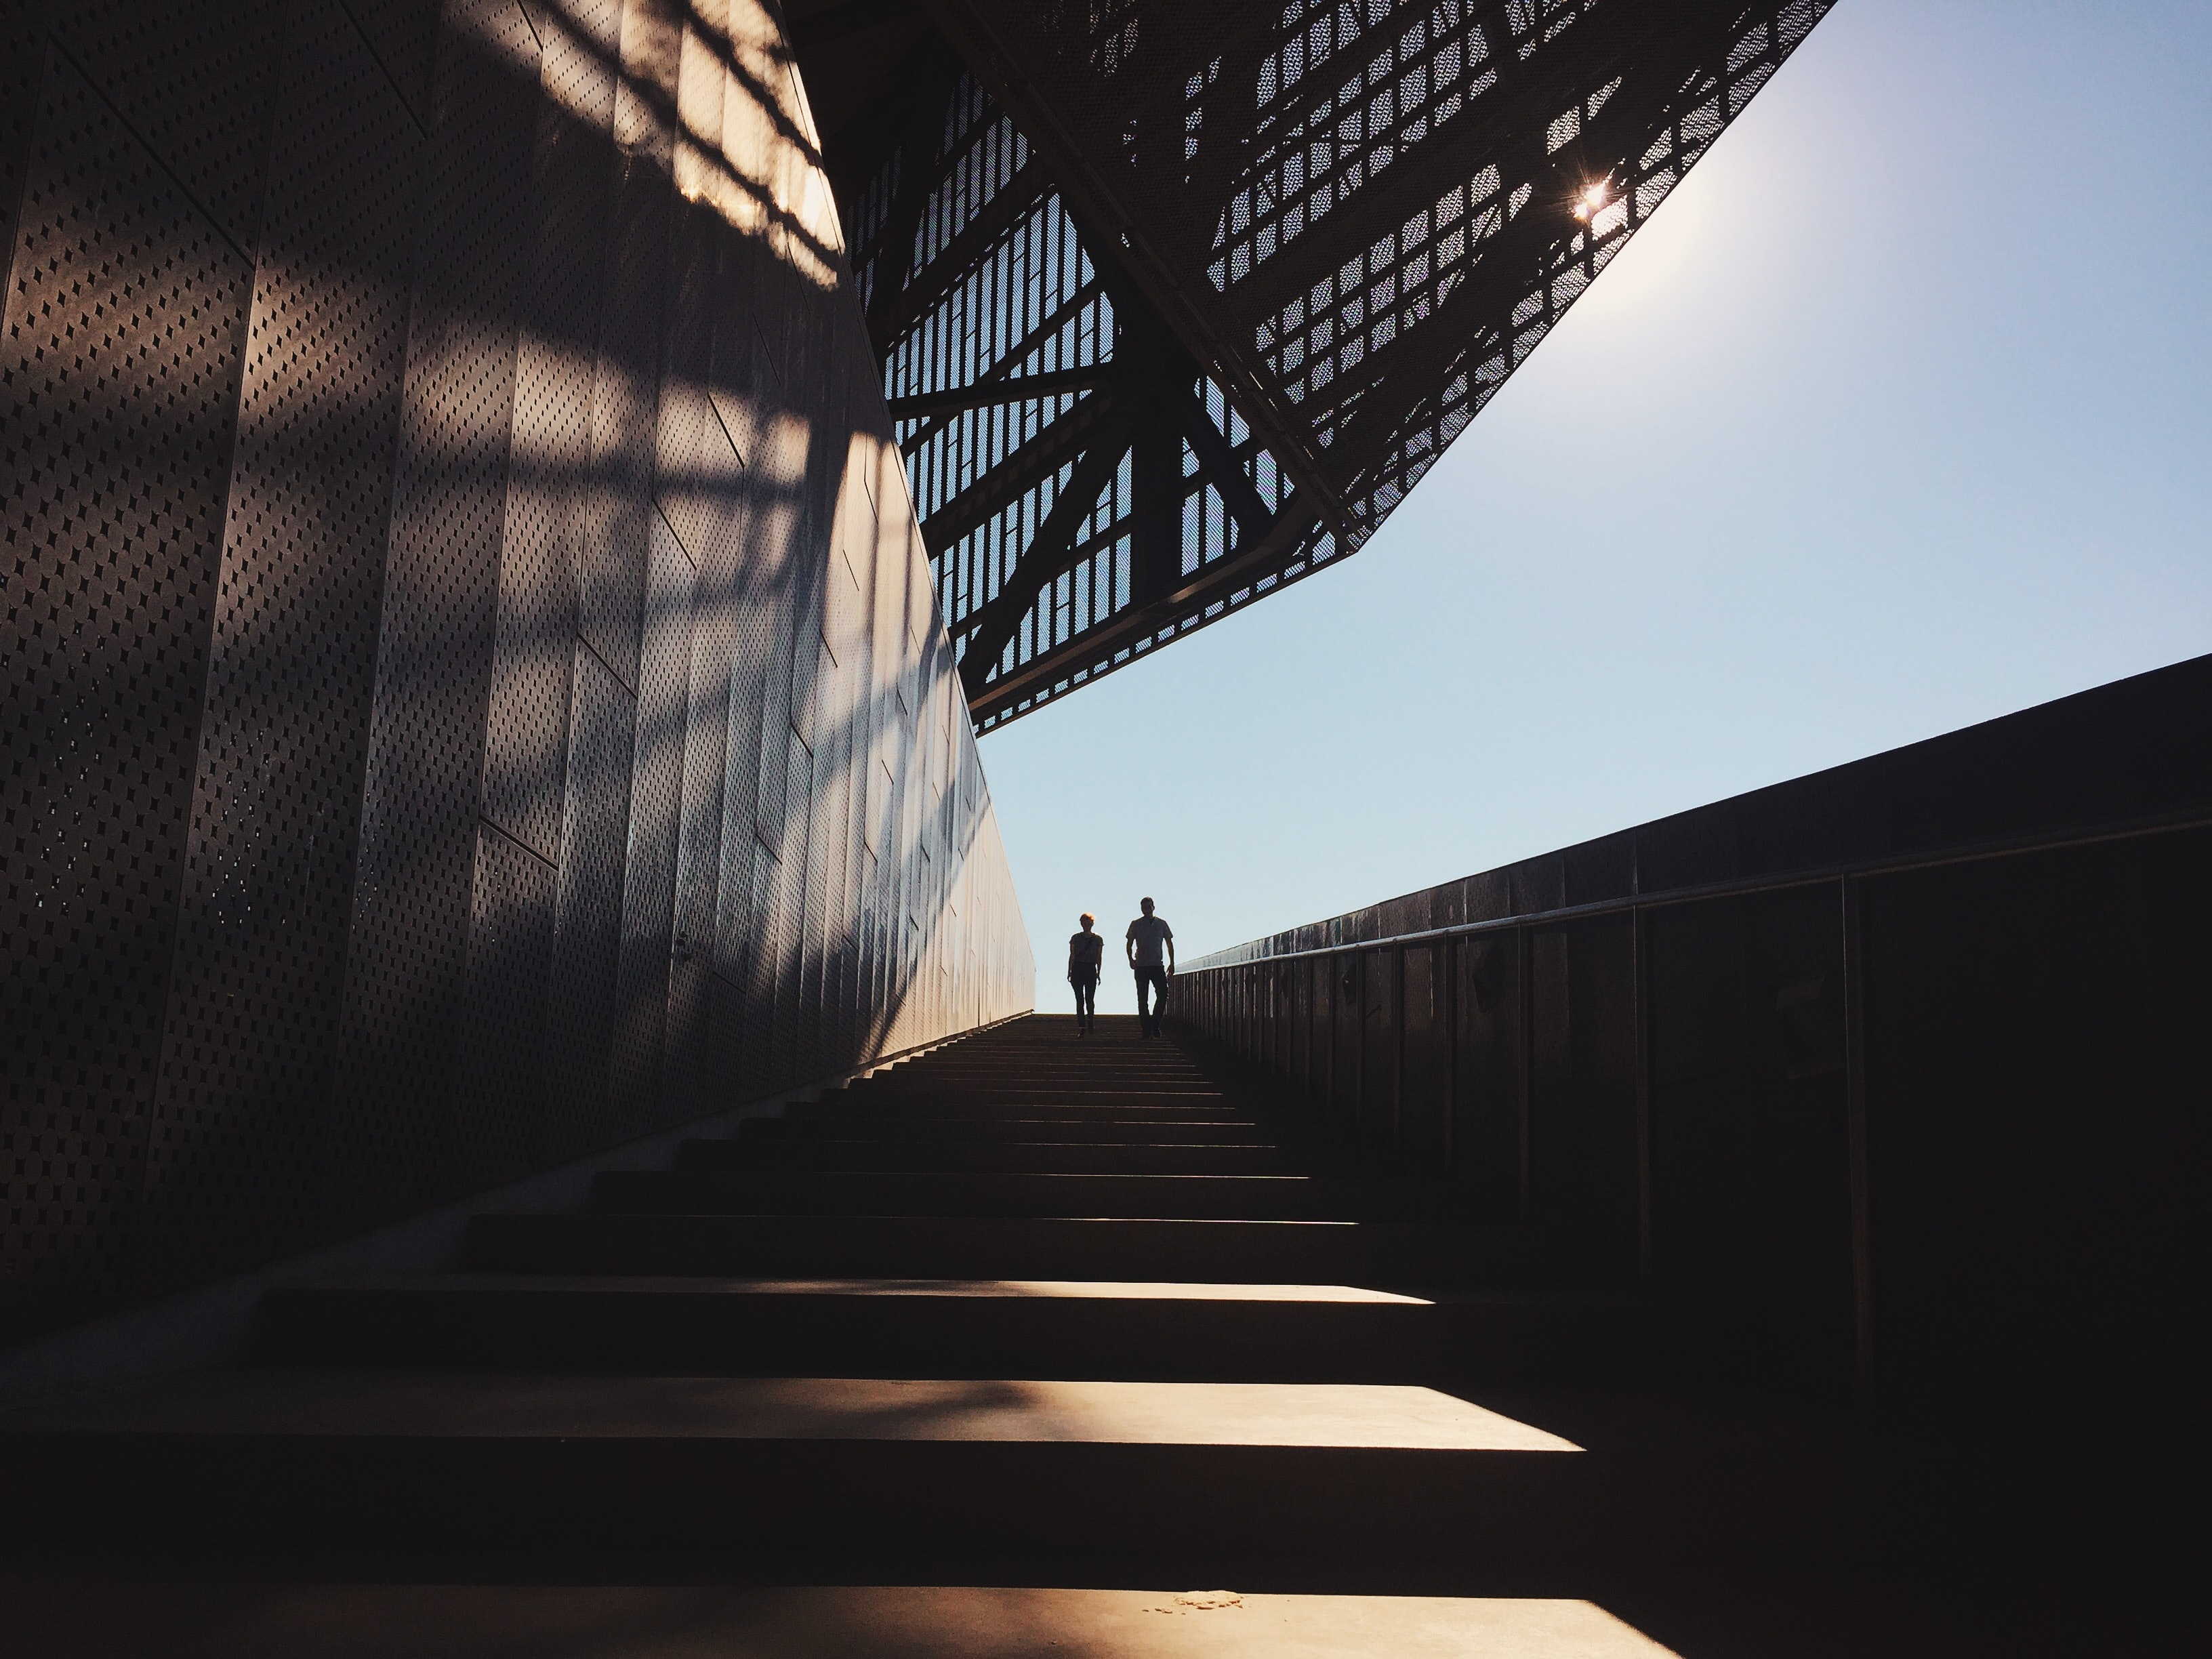 two people standing on staircase